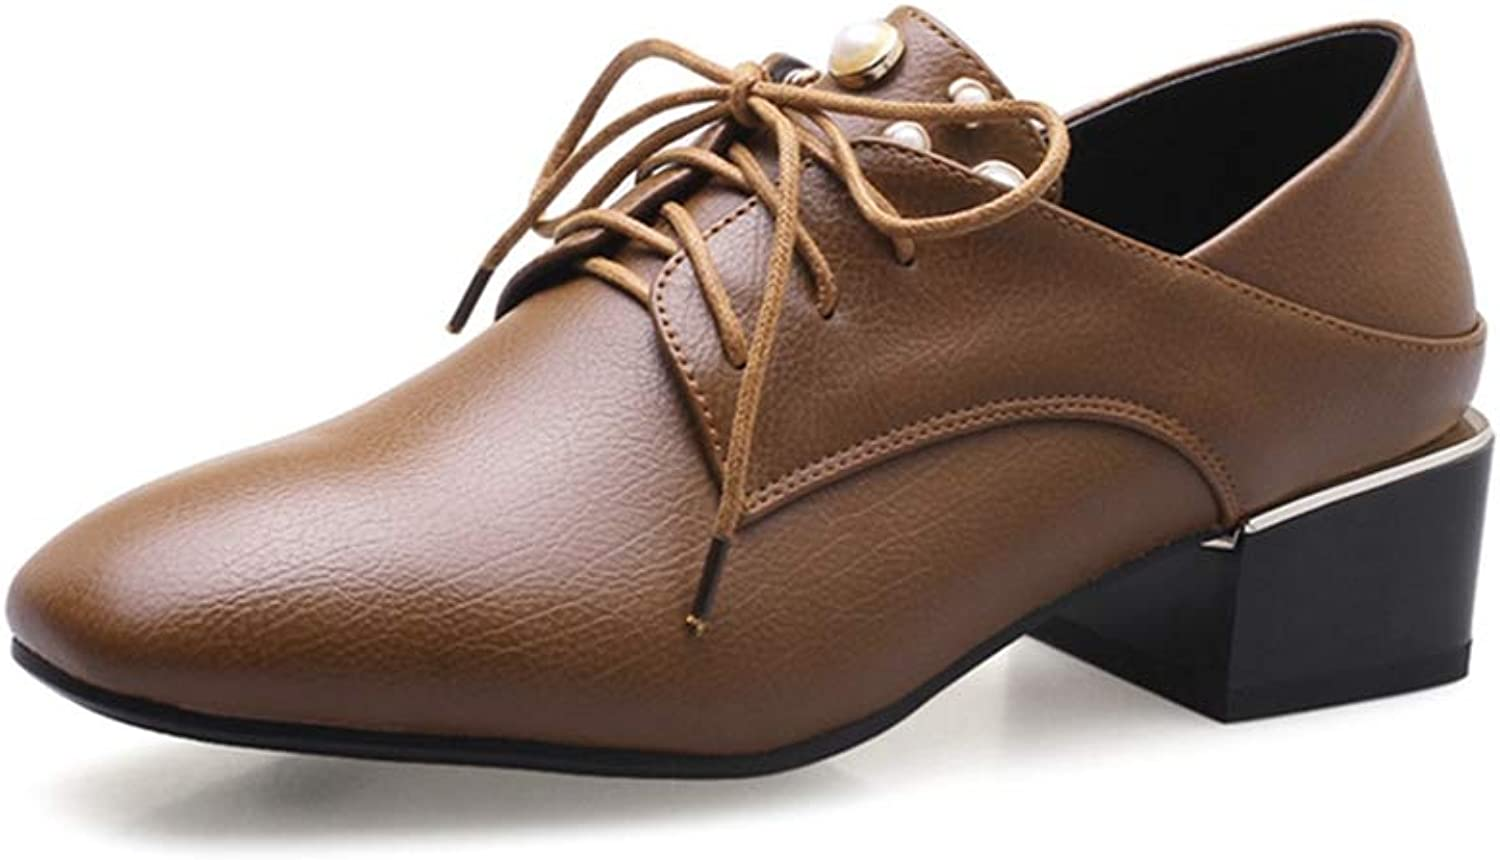 GIY Women's Lace Up Oxford Loafer shoes Square Toe Leather Chunky Mid Heel Pearl Dress Oxfords Pumps